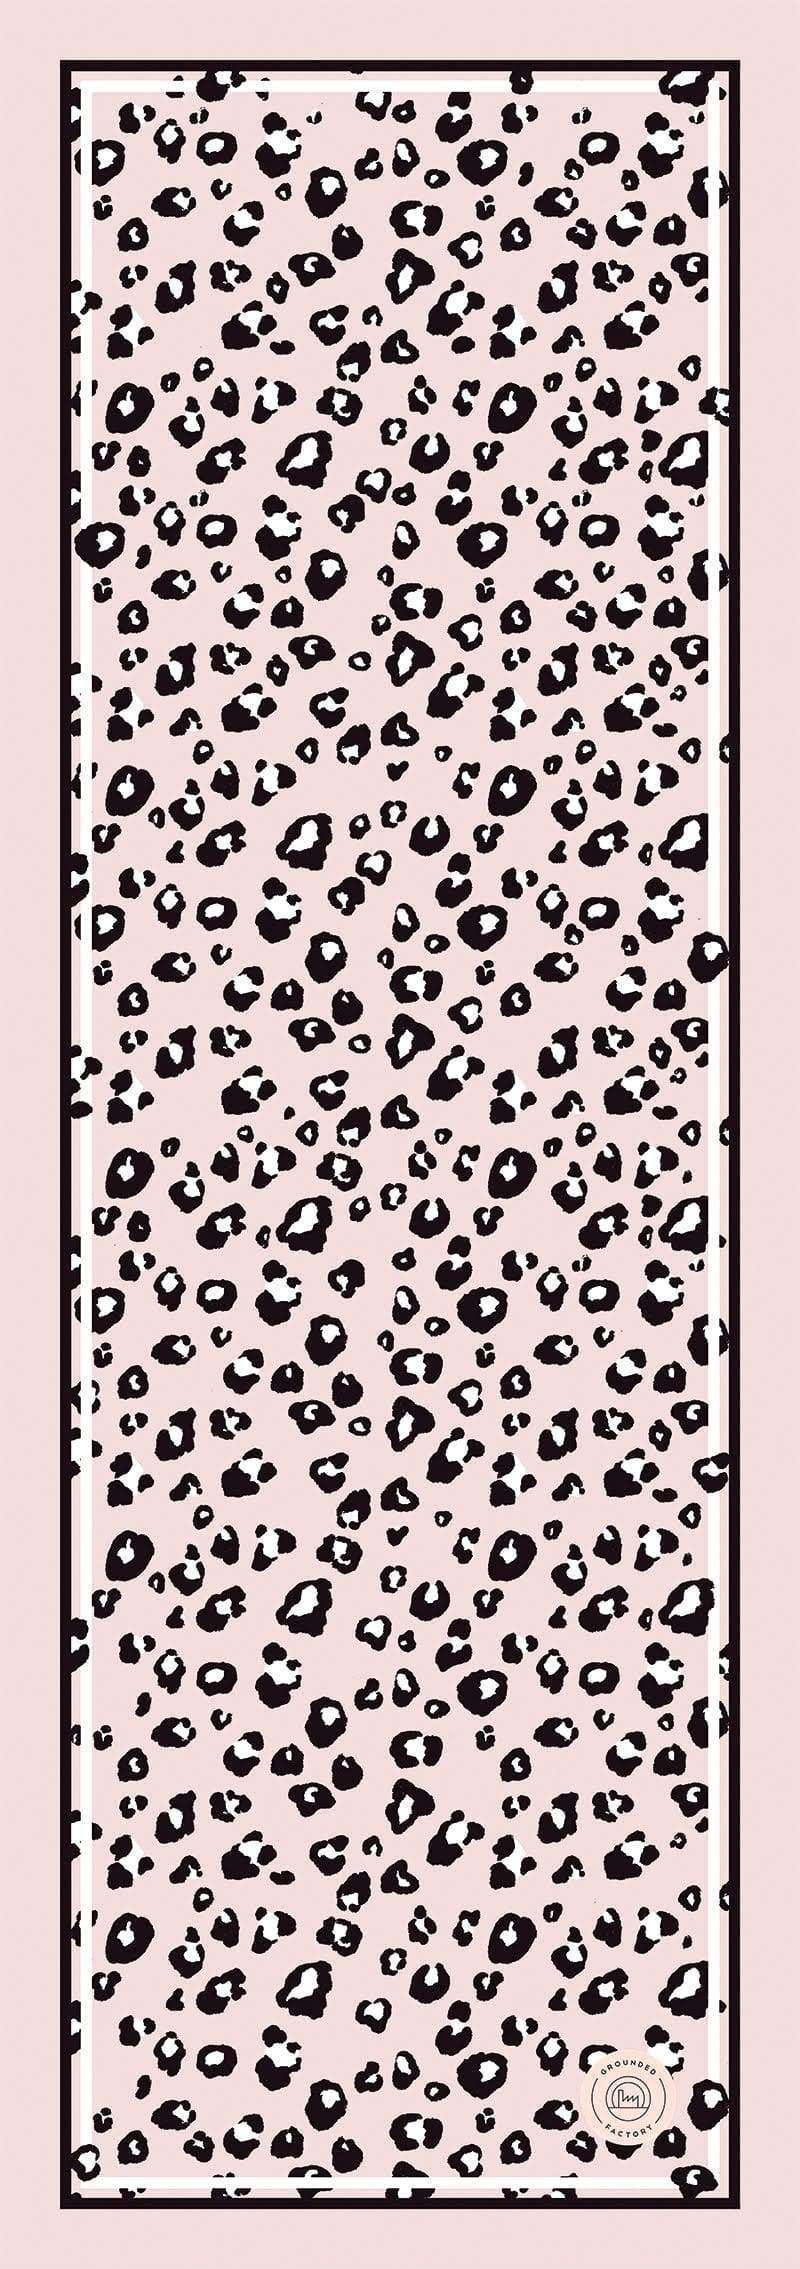 Grounded Factory Mat Leopard Pink Studio Yoga Mat - Grounded Factory